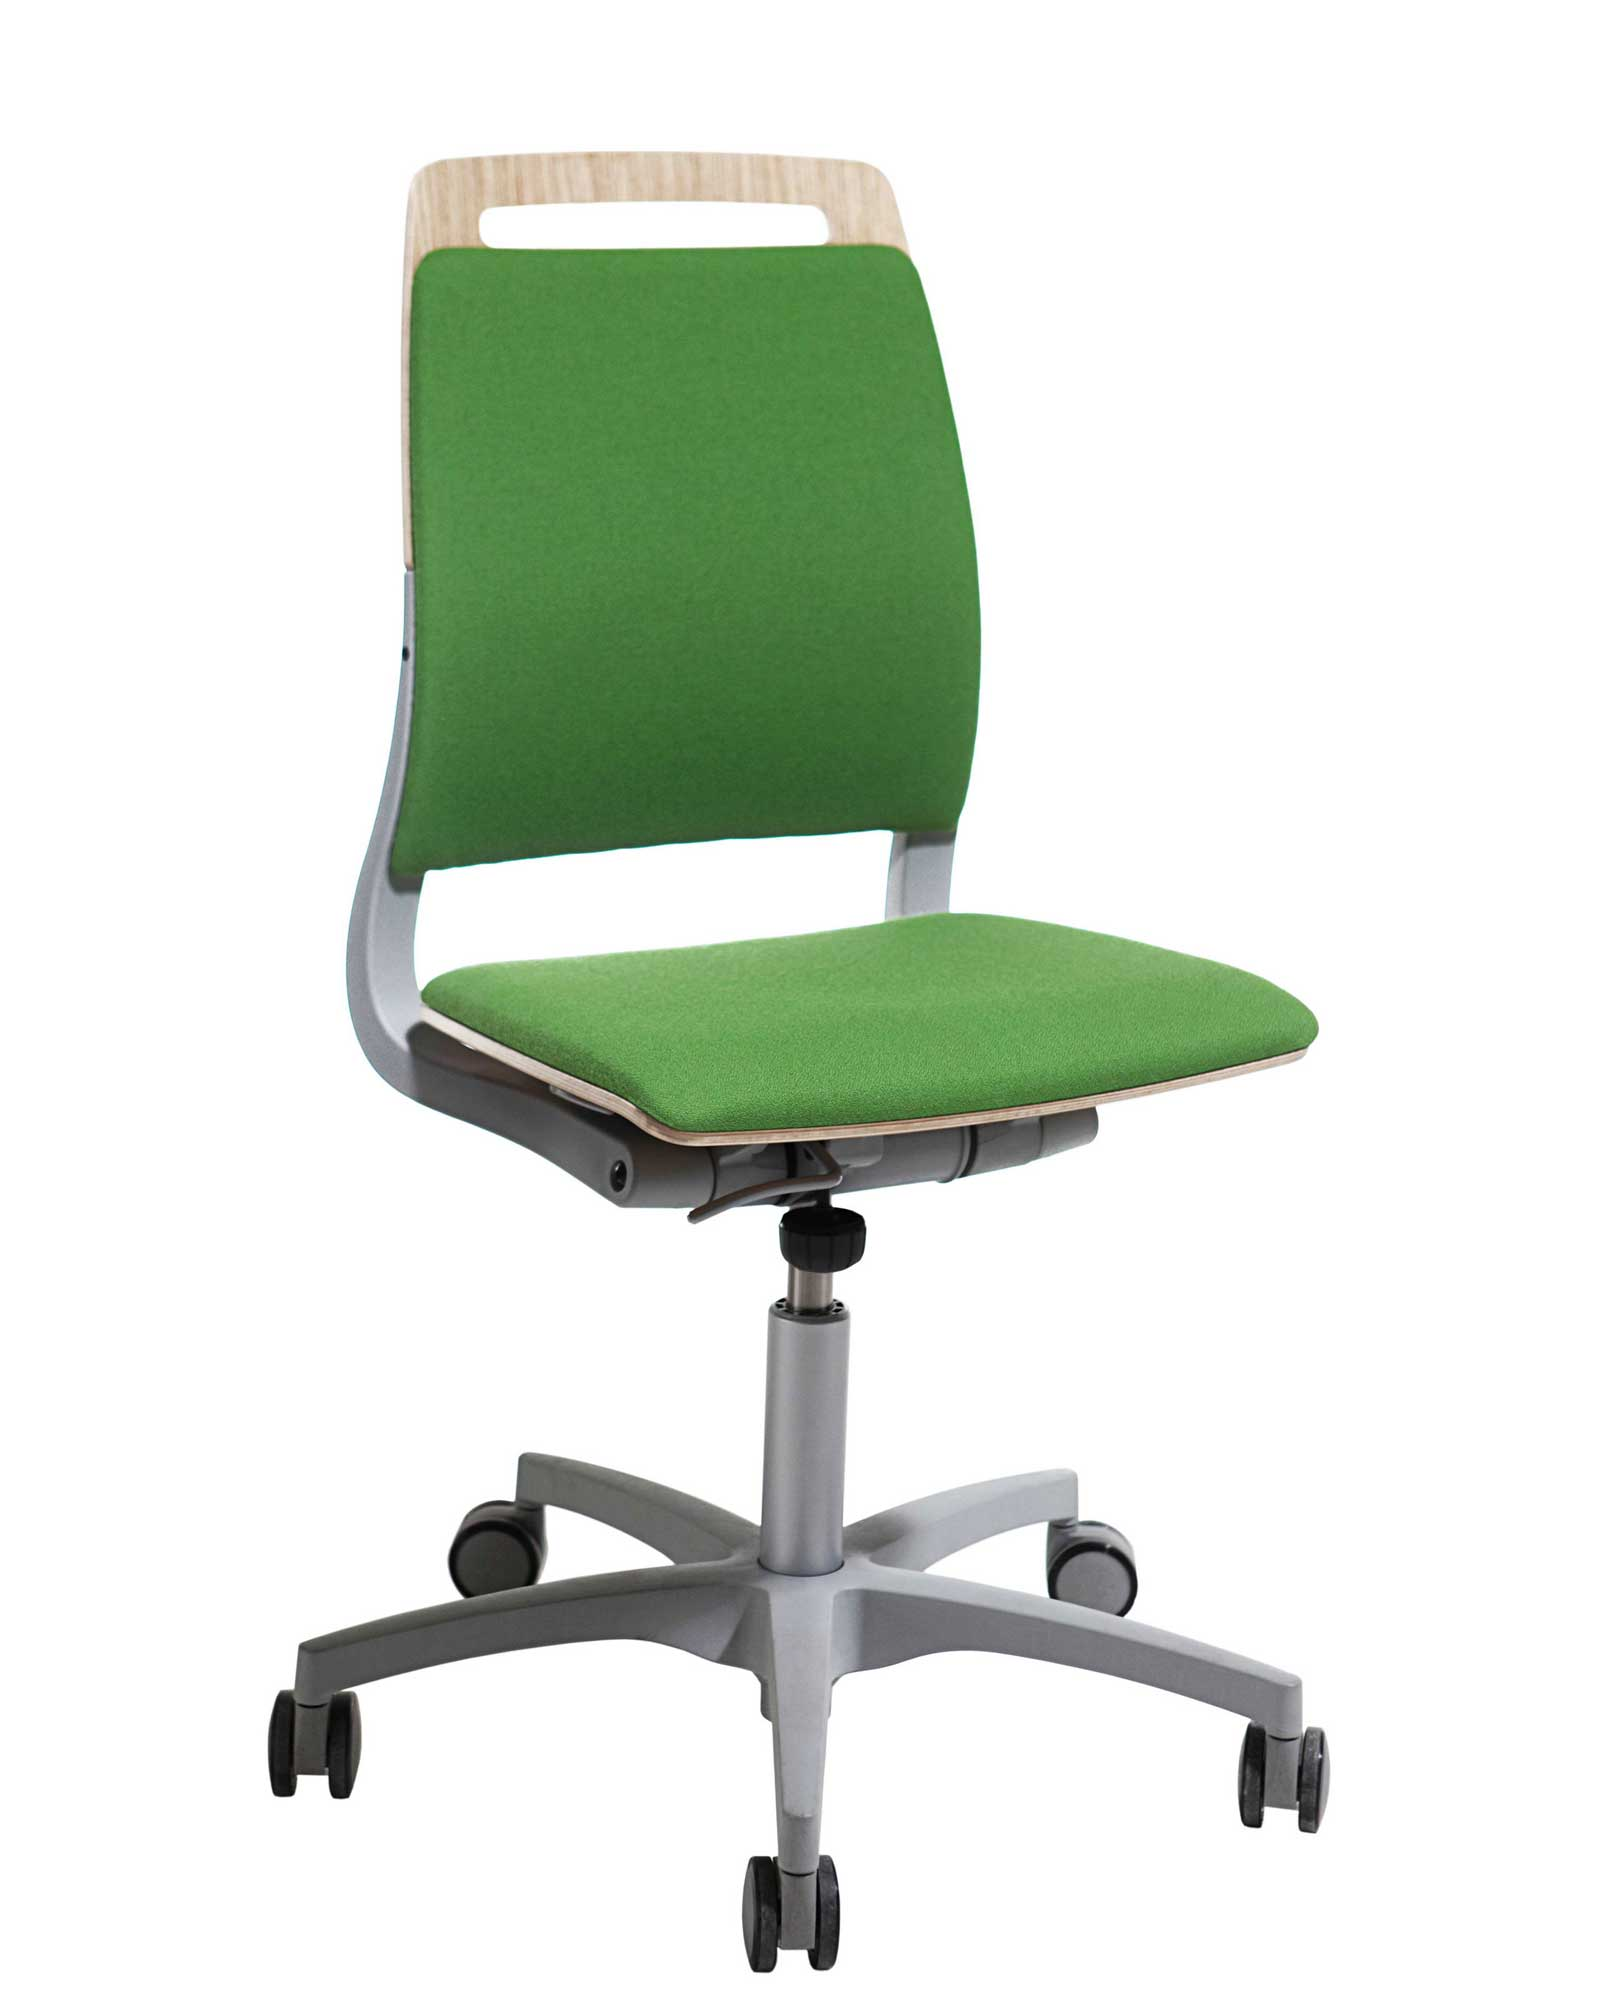 Armless Office Chairs With Wheels Green Office Chairs For Our Environment